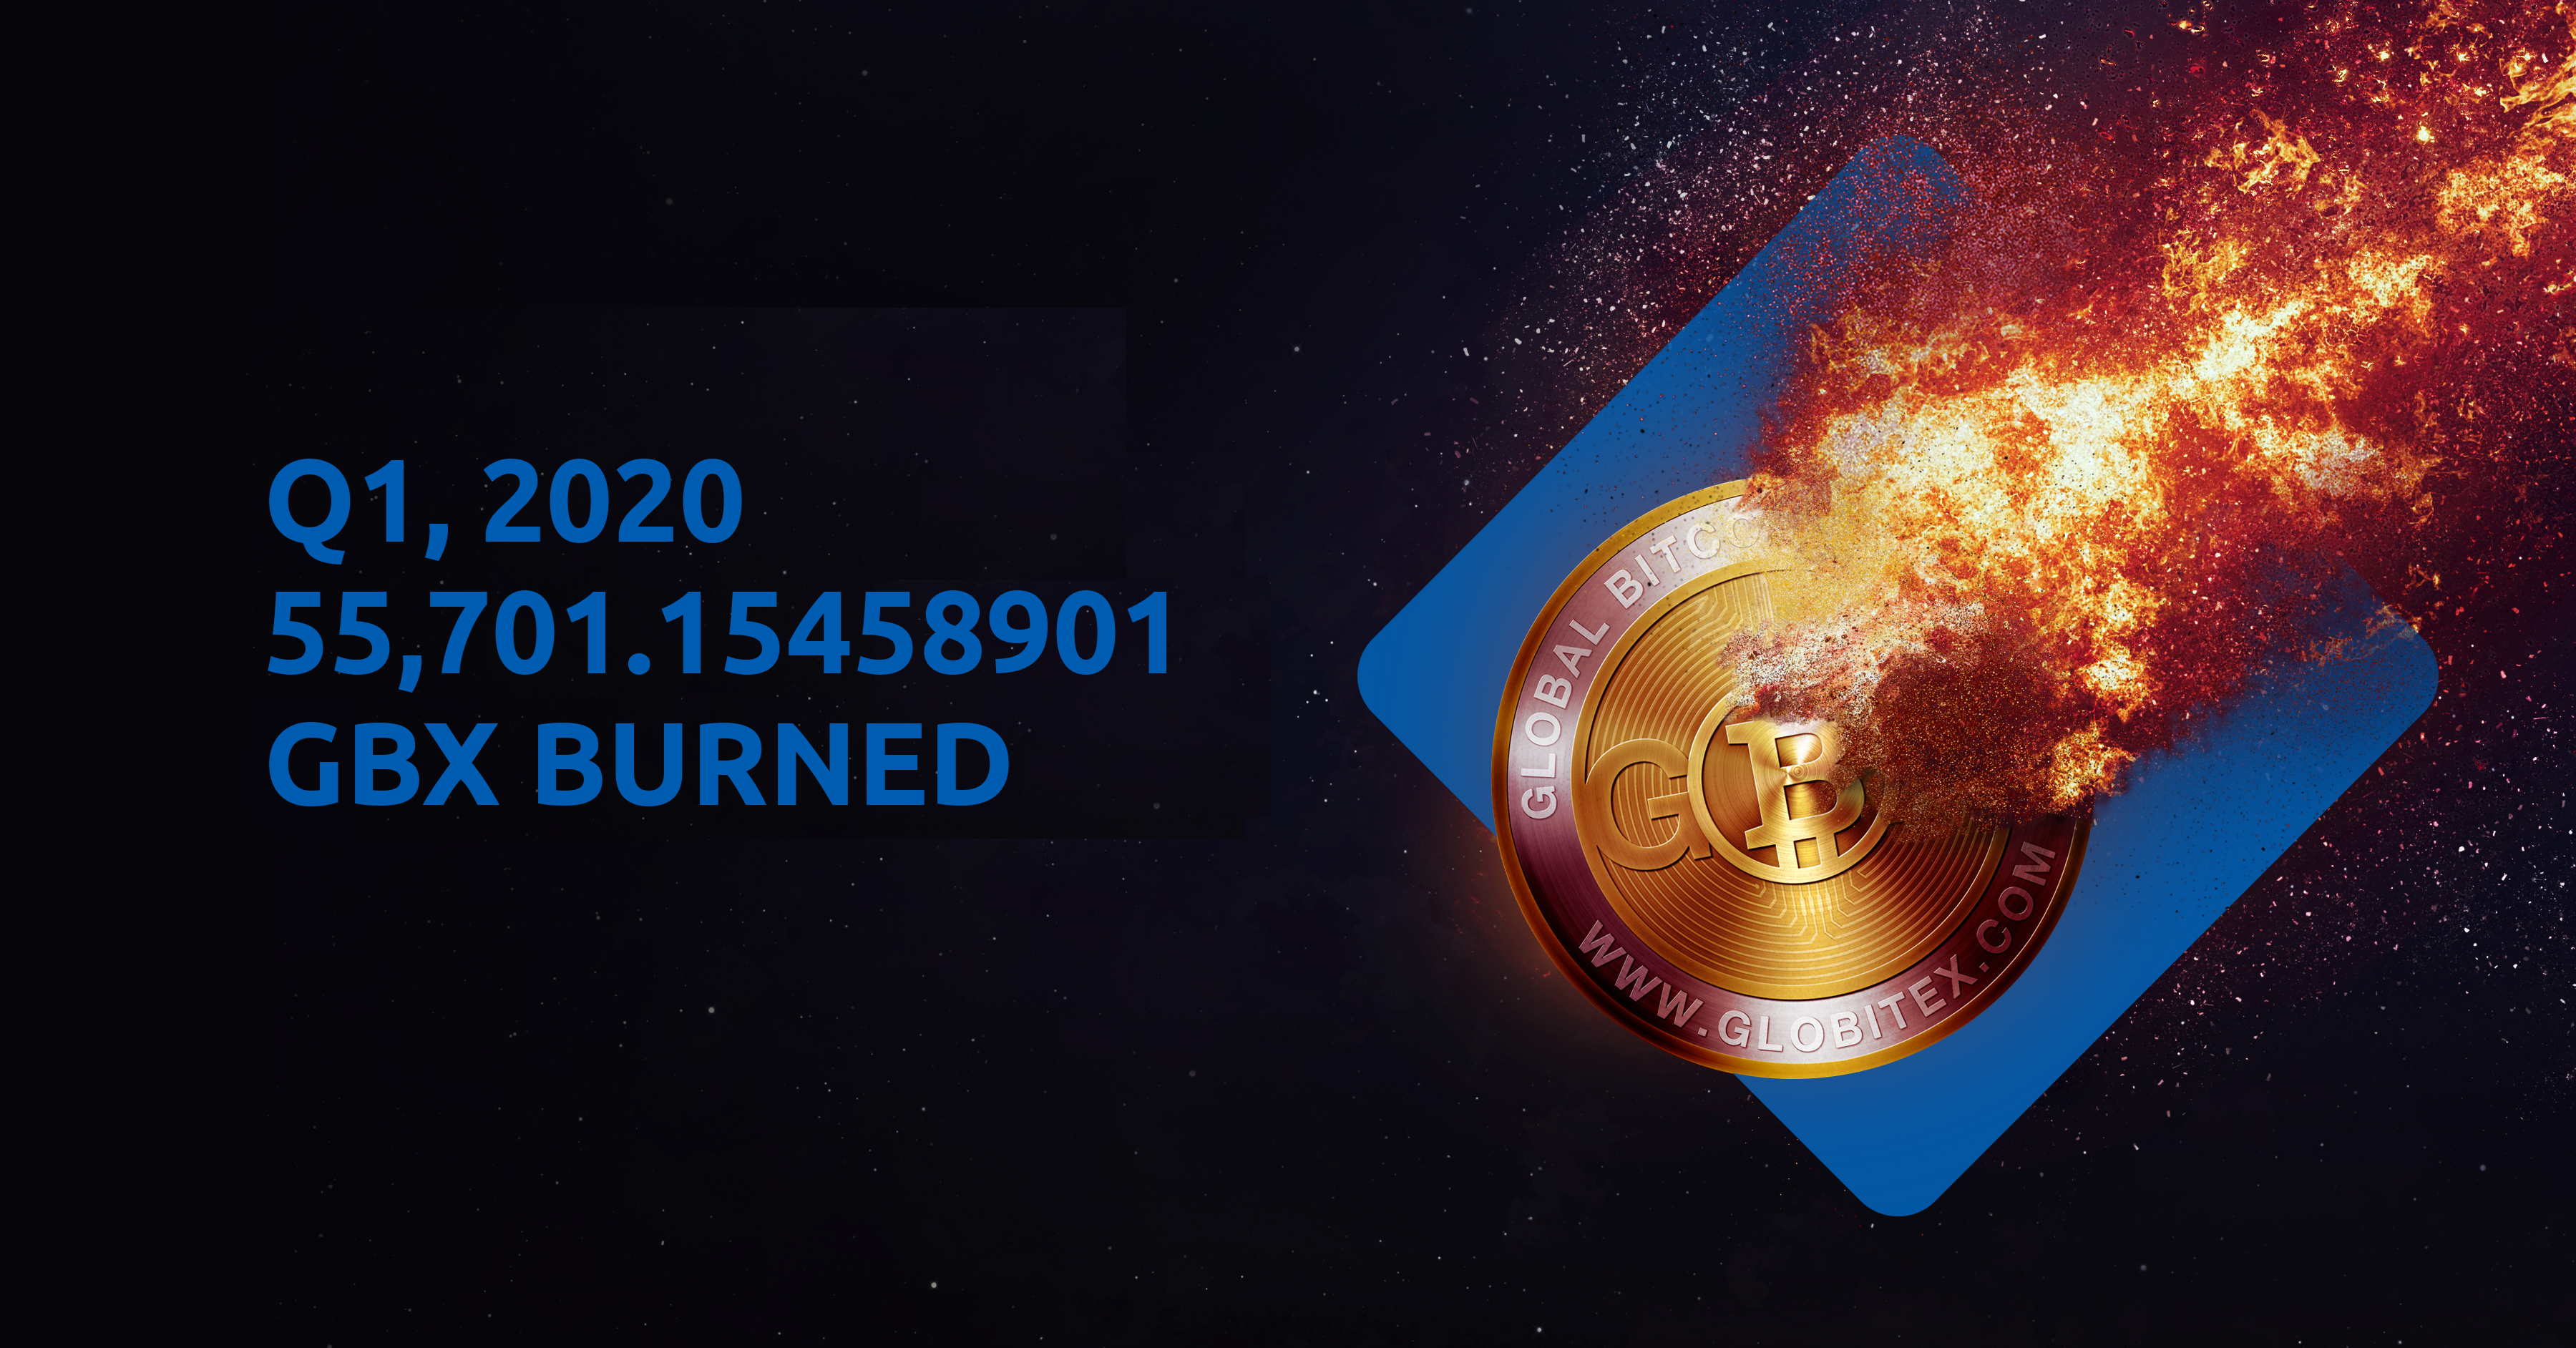 Globitex Token GBX Burn Q1 2020